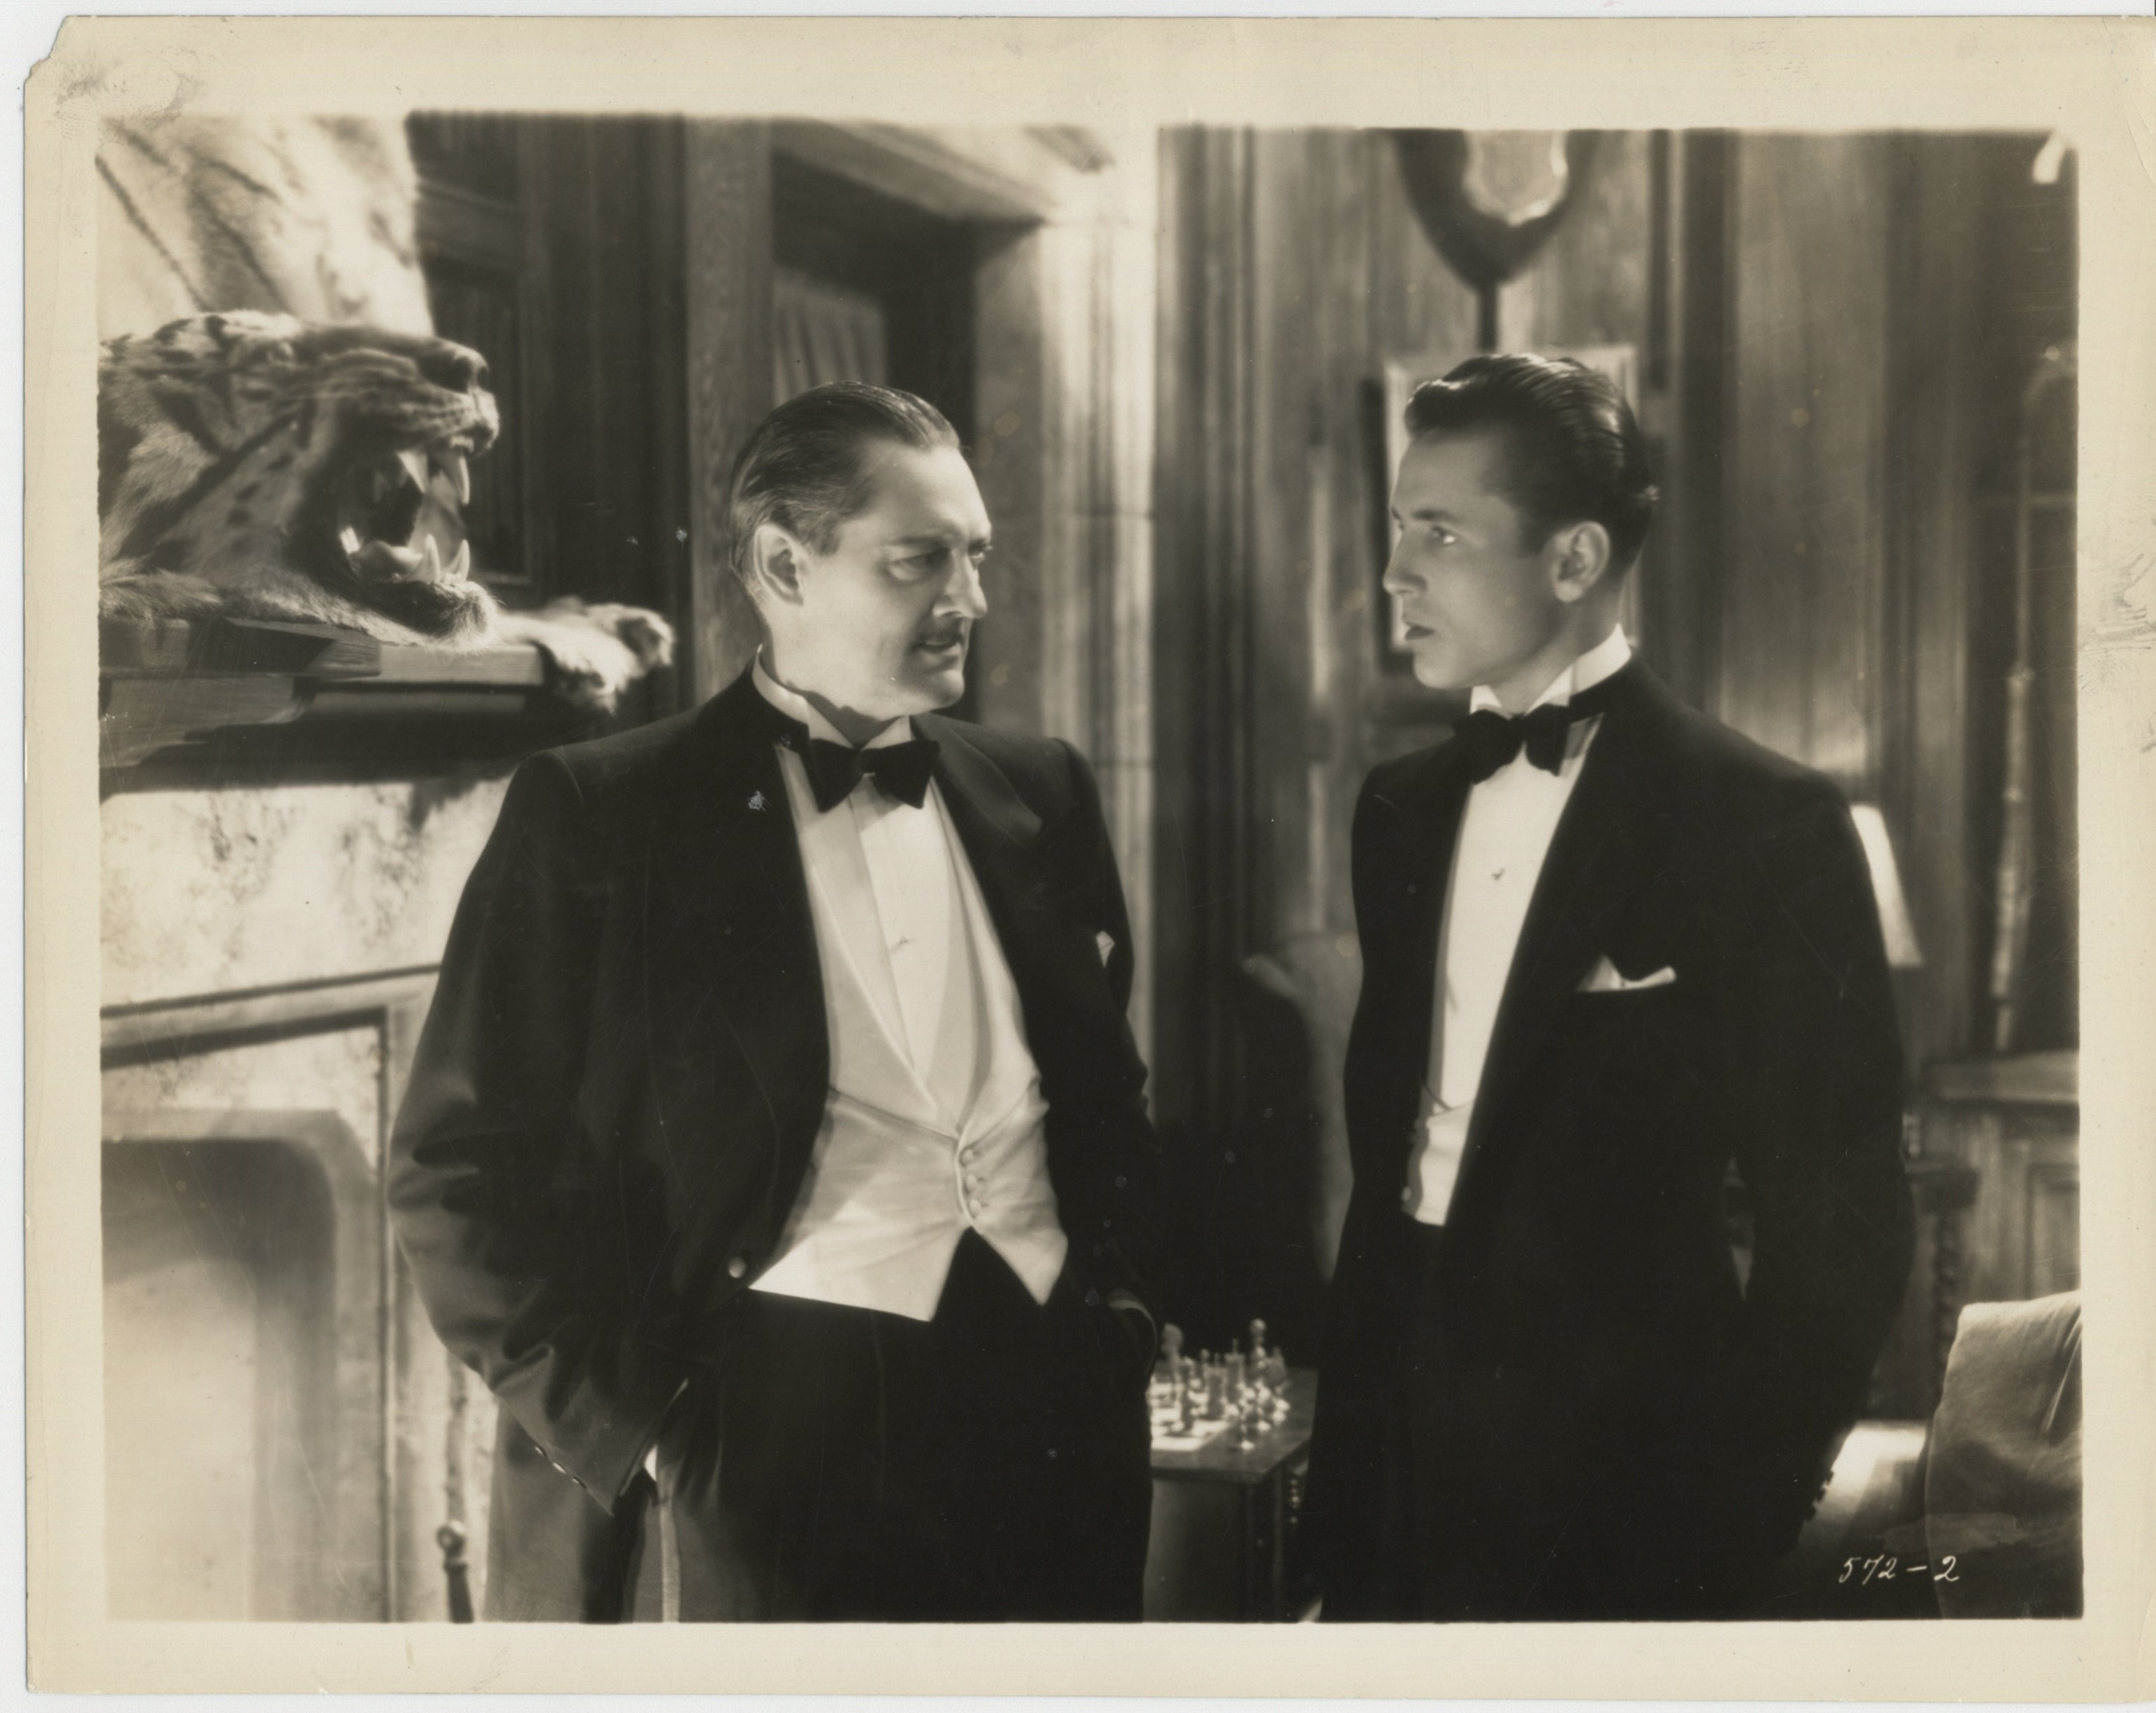 Lionel Barrymore and William Bakewell in Guilty Hands (1931)